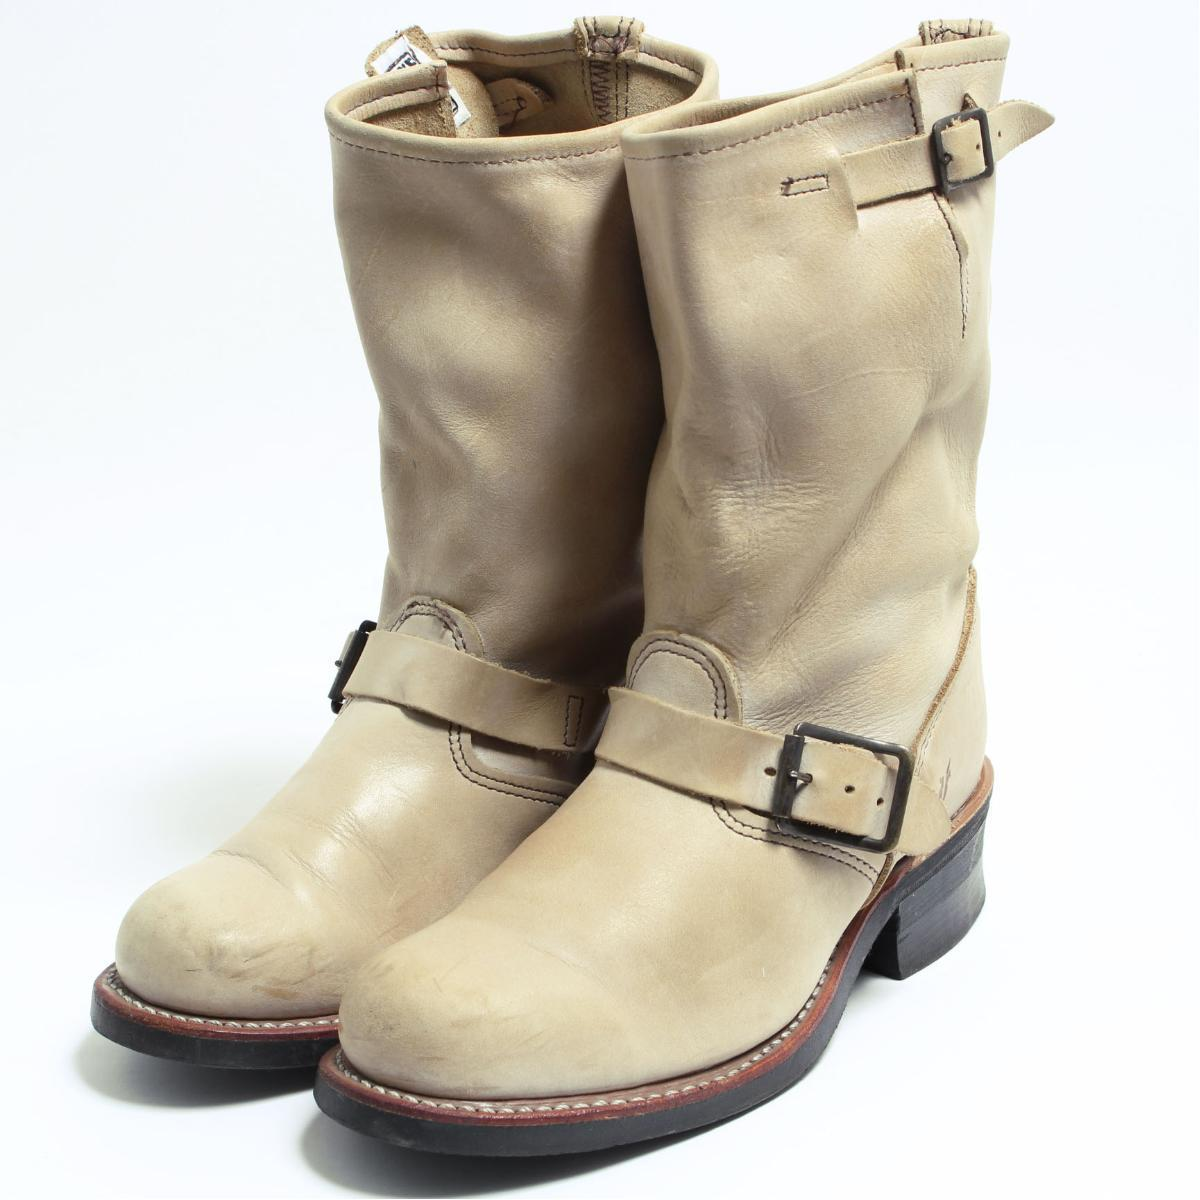 443792306f2 7M Lady's 23.0cm /bon4350 made in fried food FRYE engineer boots USA